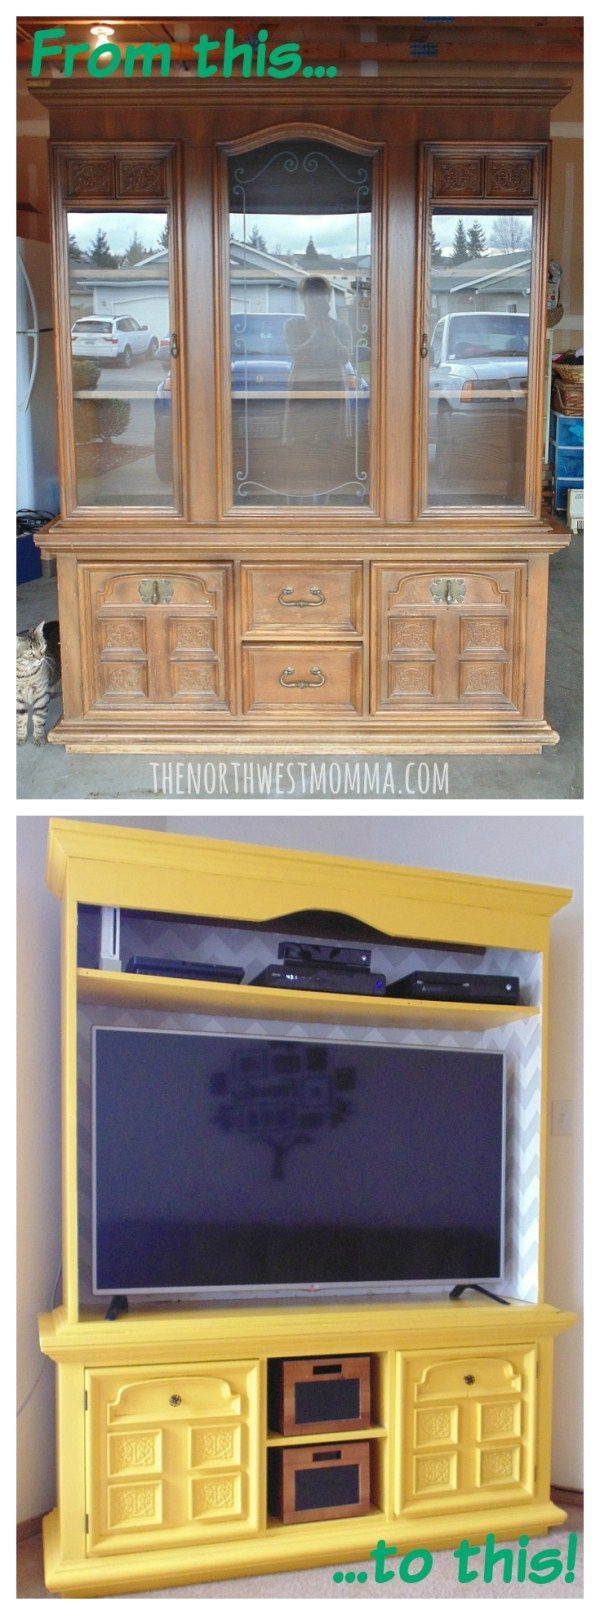 doors cabinet a hutch quickcrafter liquor up lit pin tv with into converted diy